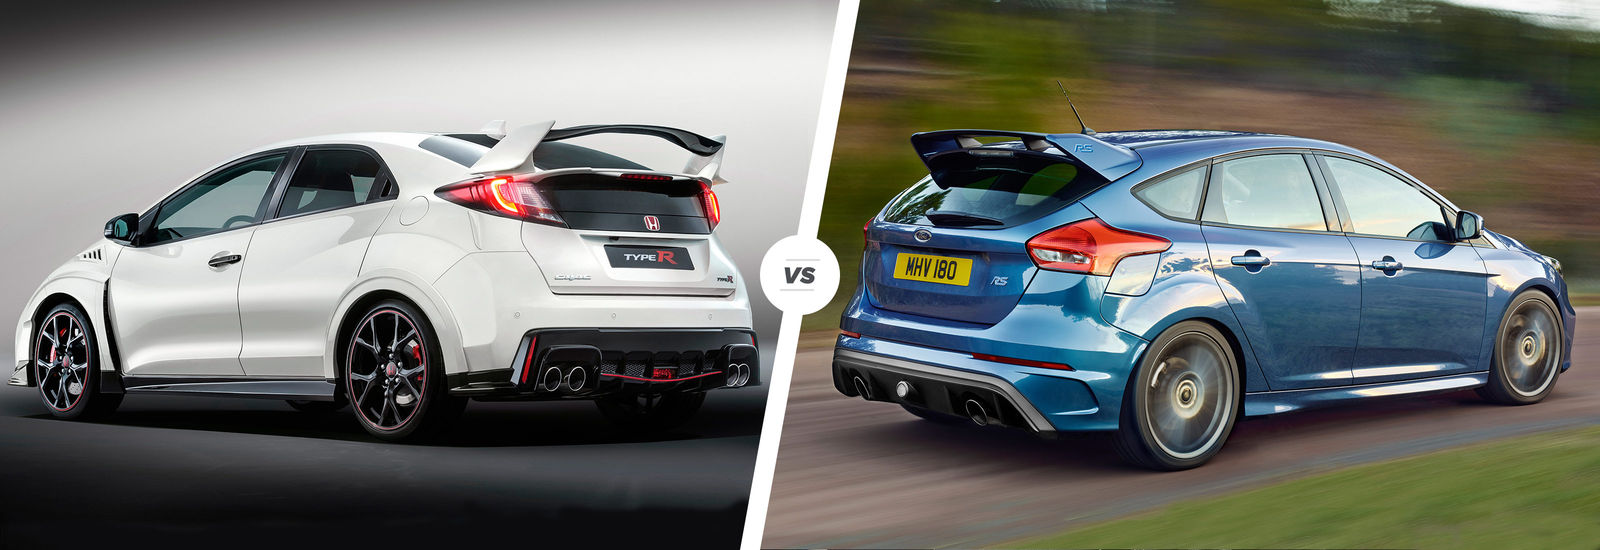 honda civic type r vs ford focus rs carwow